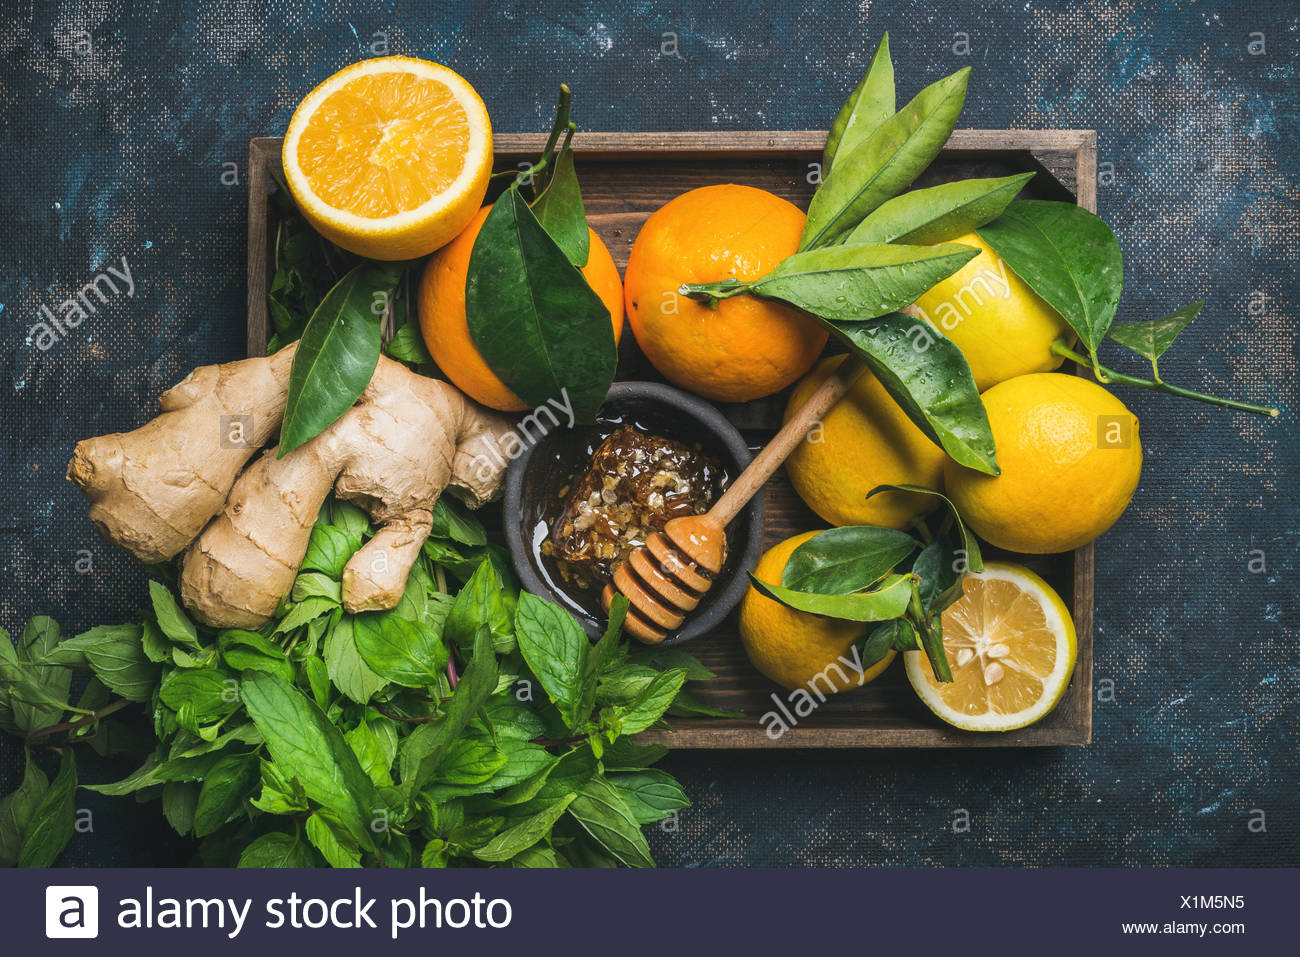 Ingredients for making immunity boosting natural drink. Lemons, oranges, mint, ginger, honey in wooden box over plywood background, top view. Clean ea - Stock Image